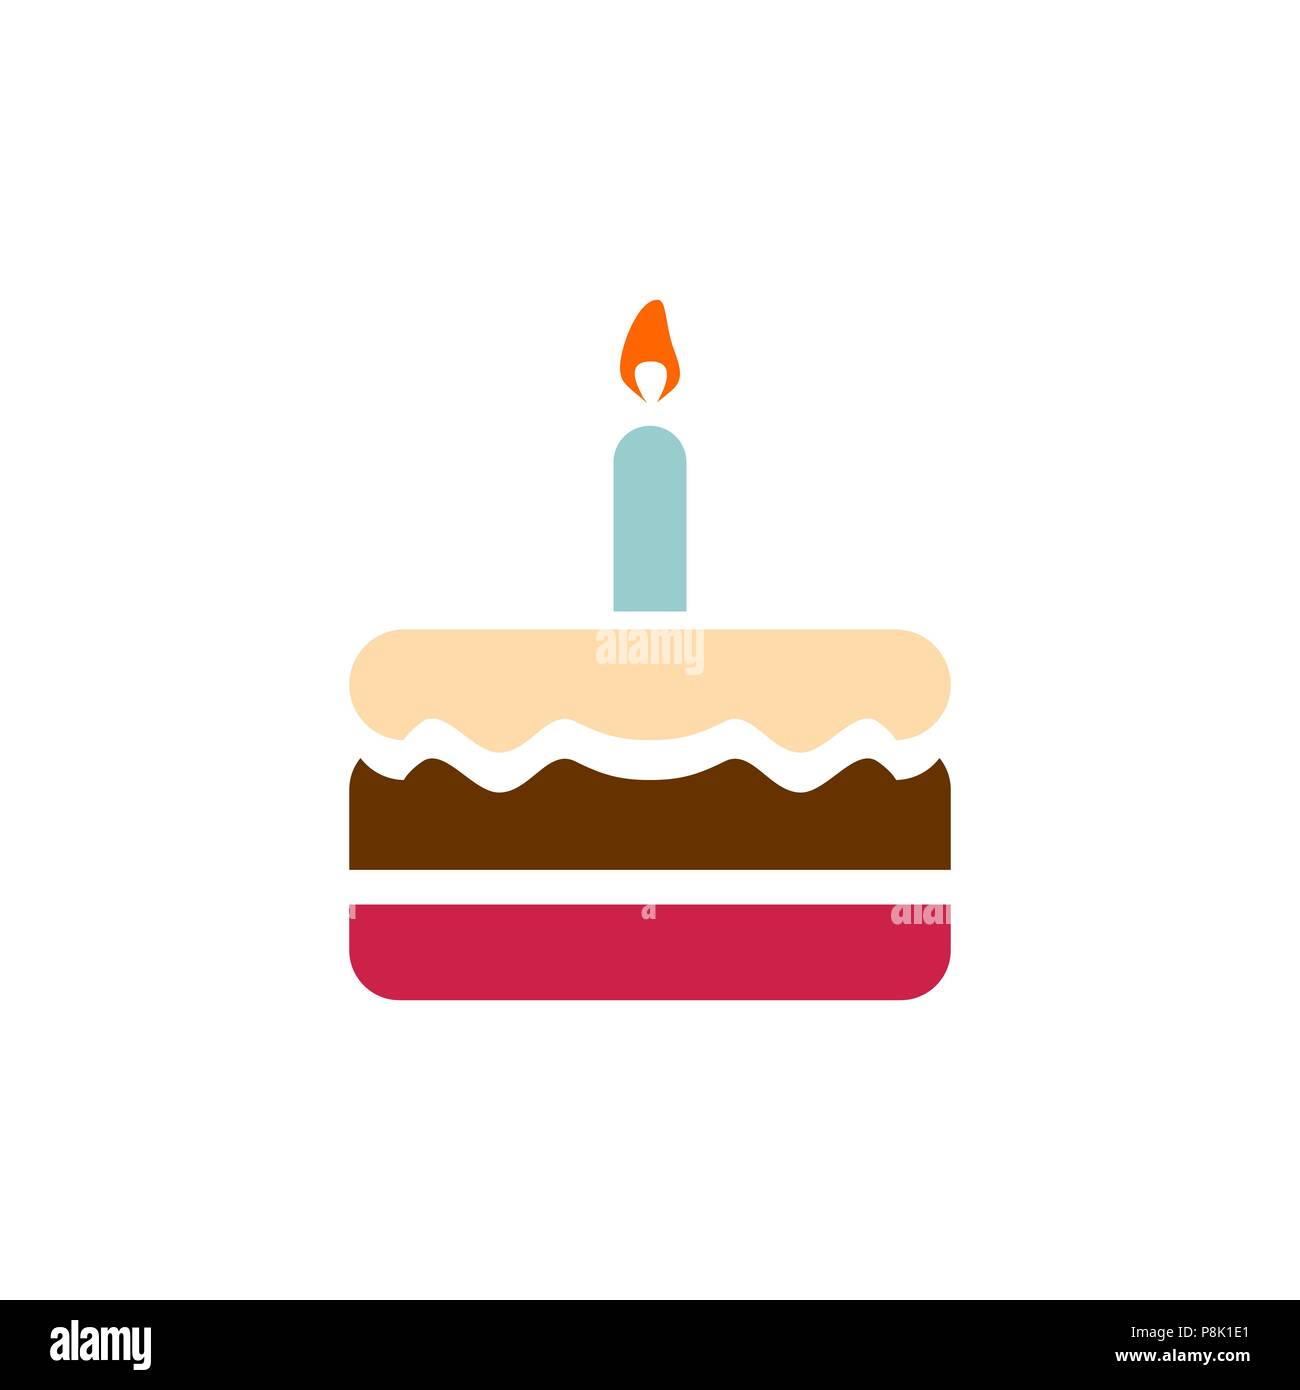 Birthday Cake Icon Simple Flat Style Illustration Image Stock Vector